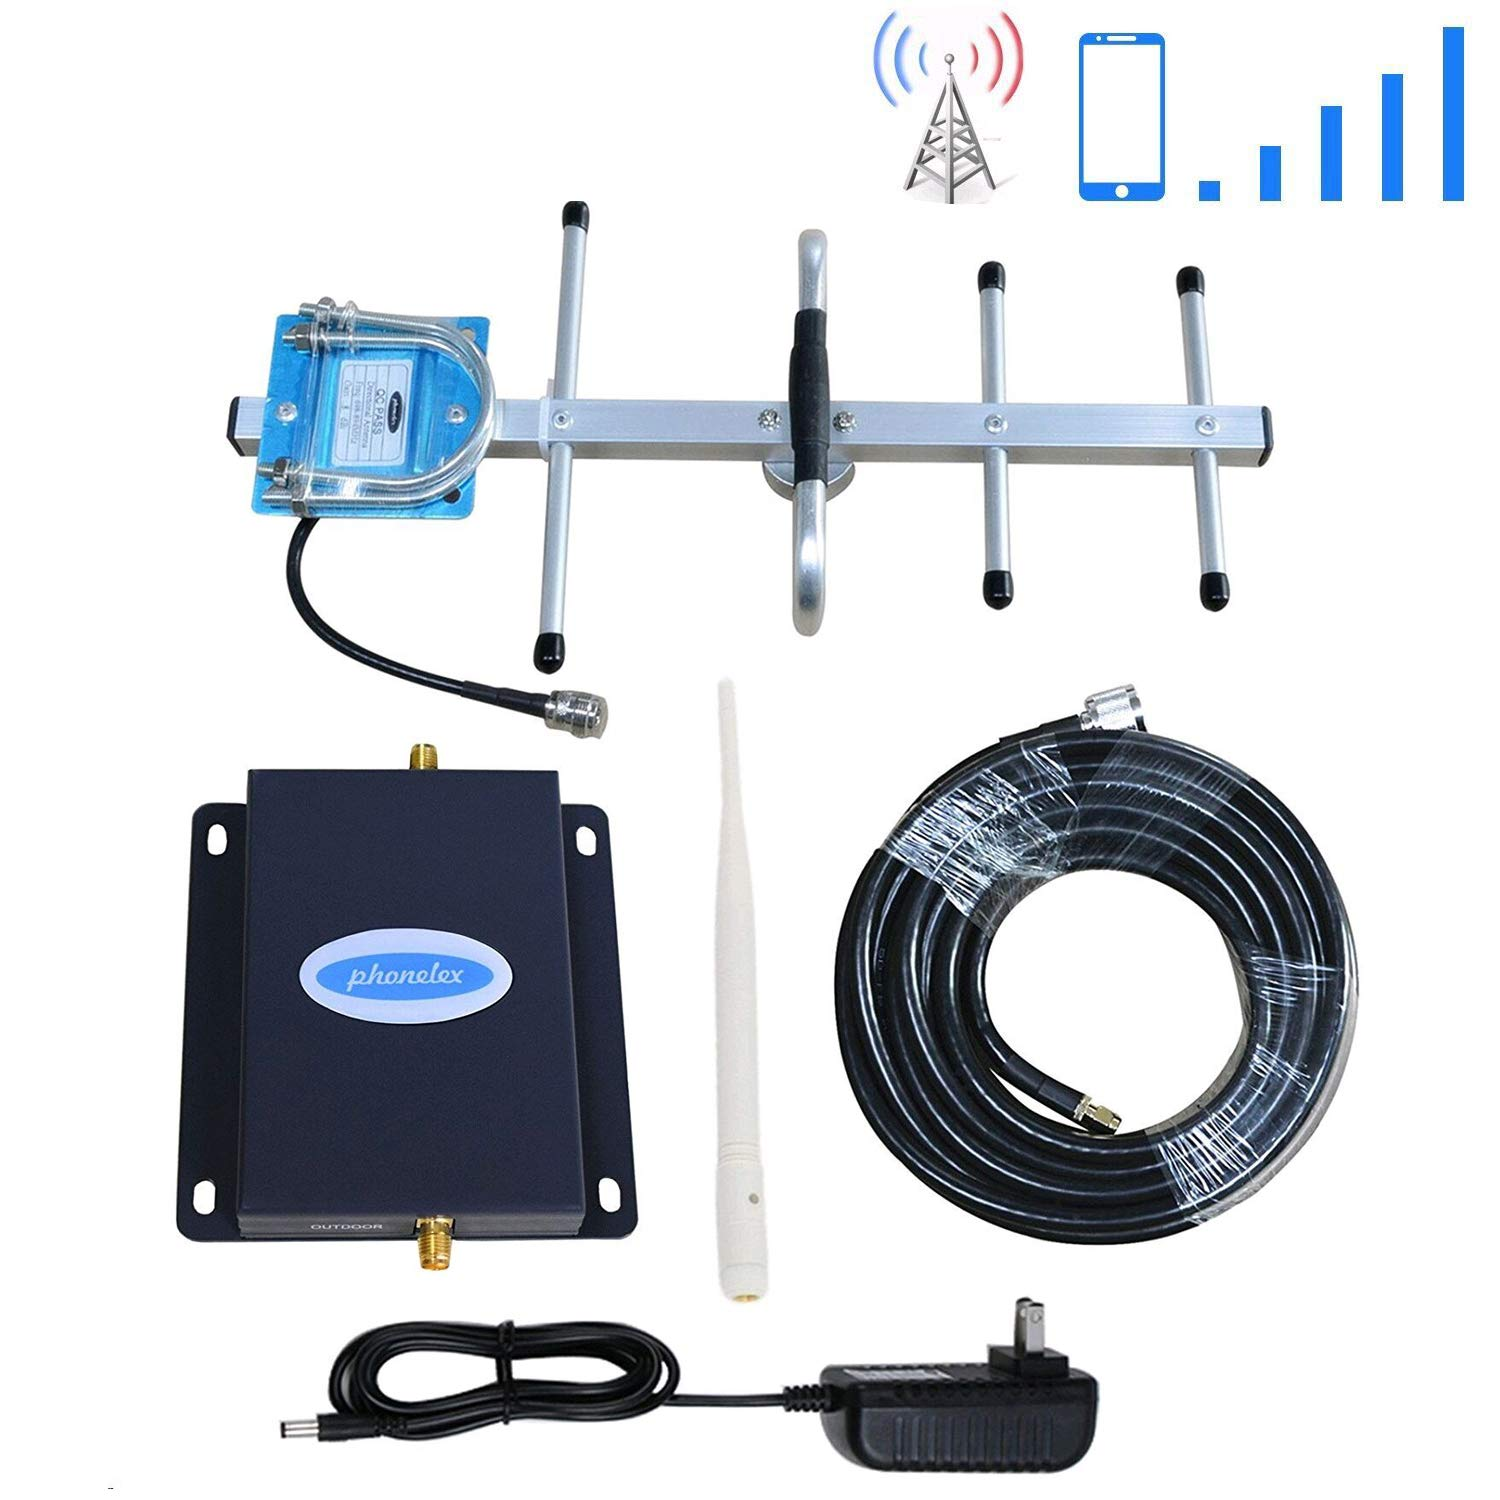 Cell Phone Signal Booster AT&T 4G LTE Cell Signal Booster Amplifier ATT Cell Phone Booster Repeater 700Mhz Band12/17 Phonelex ATT T-Mobile Mobile Phone Signal Booster with Whip+Yagi Antenna Kits by PHONELEX